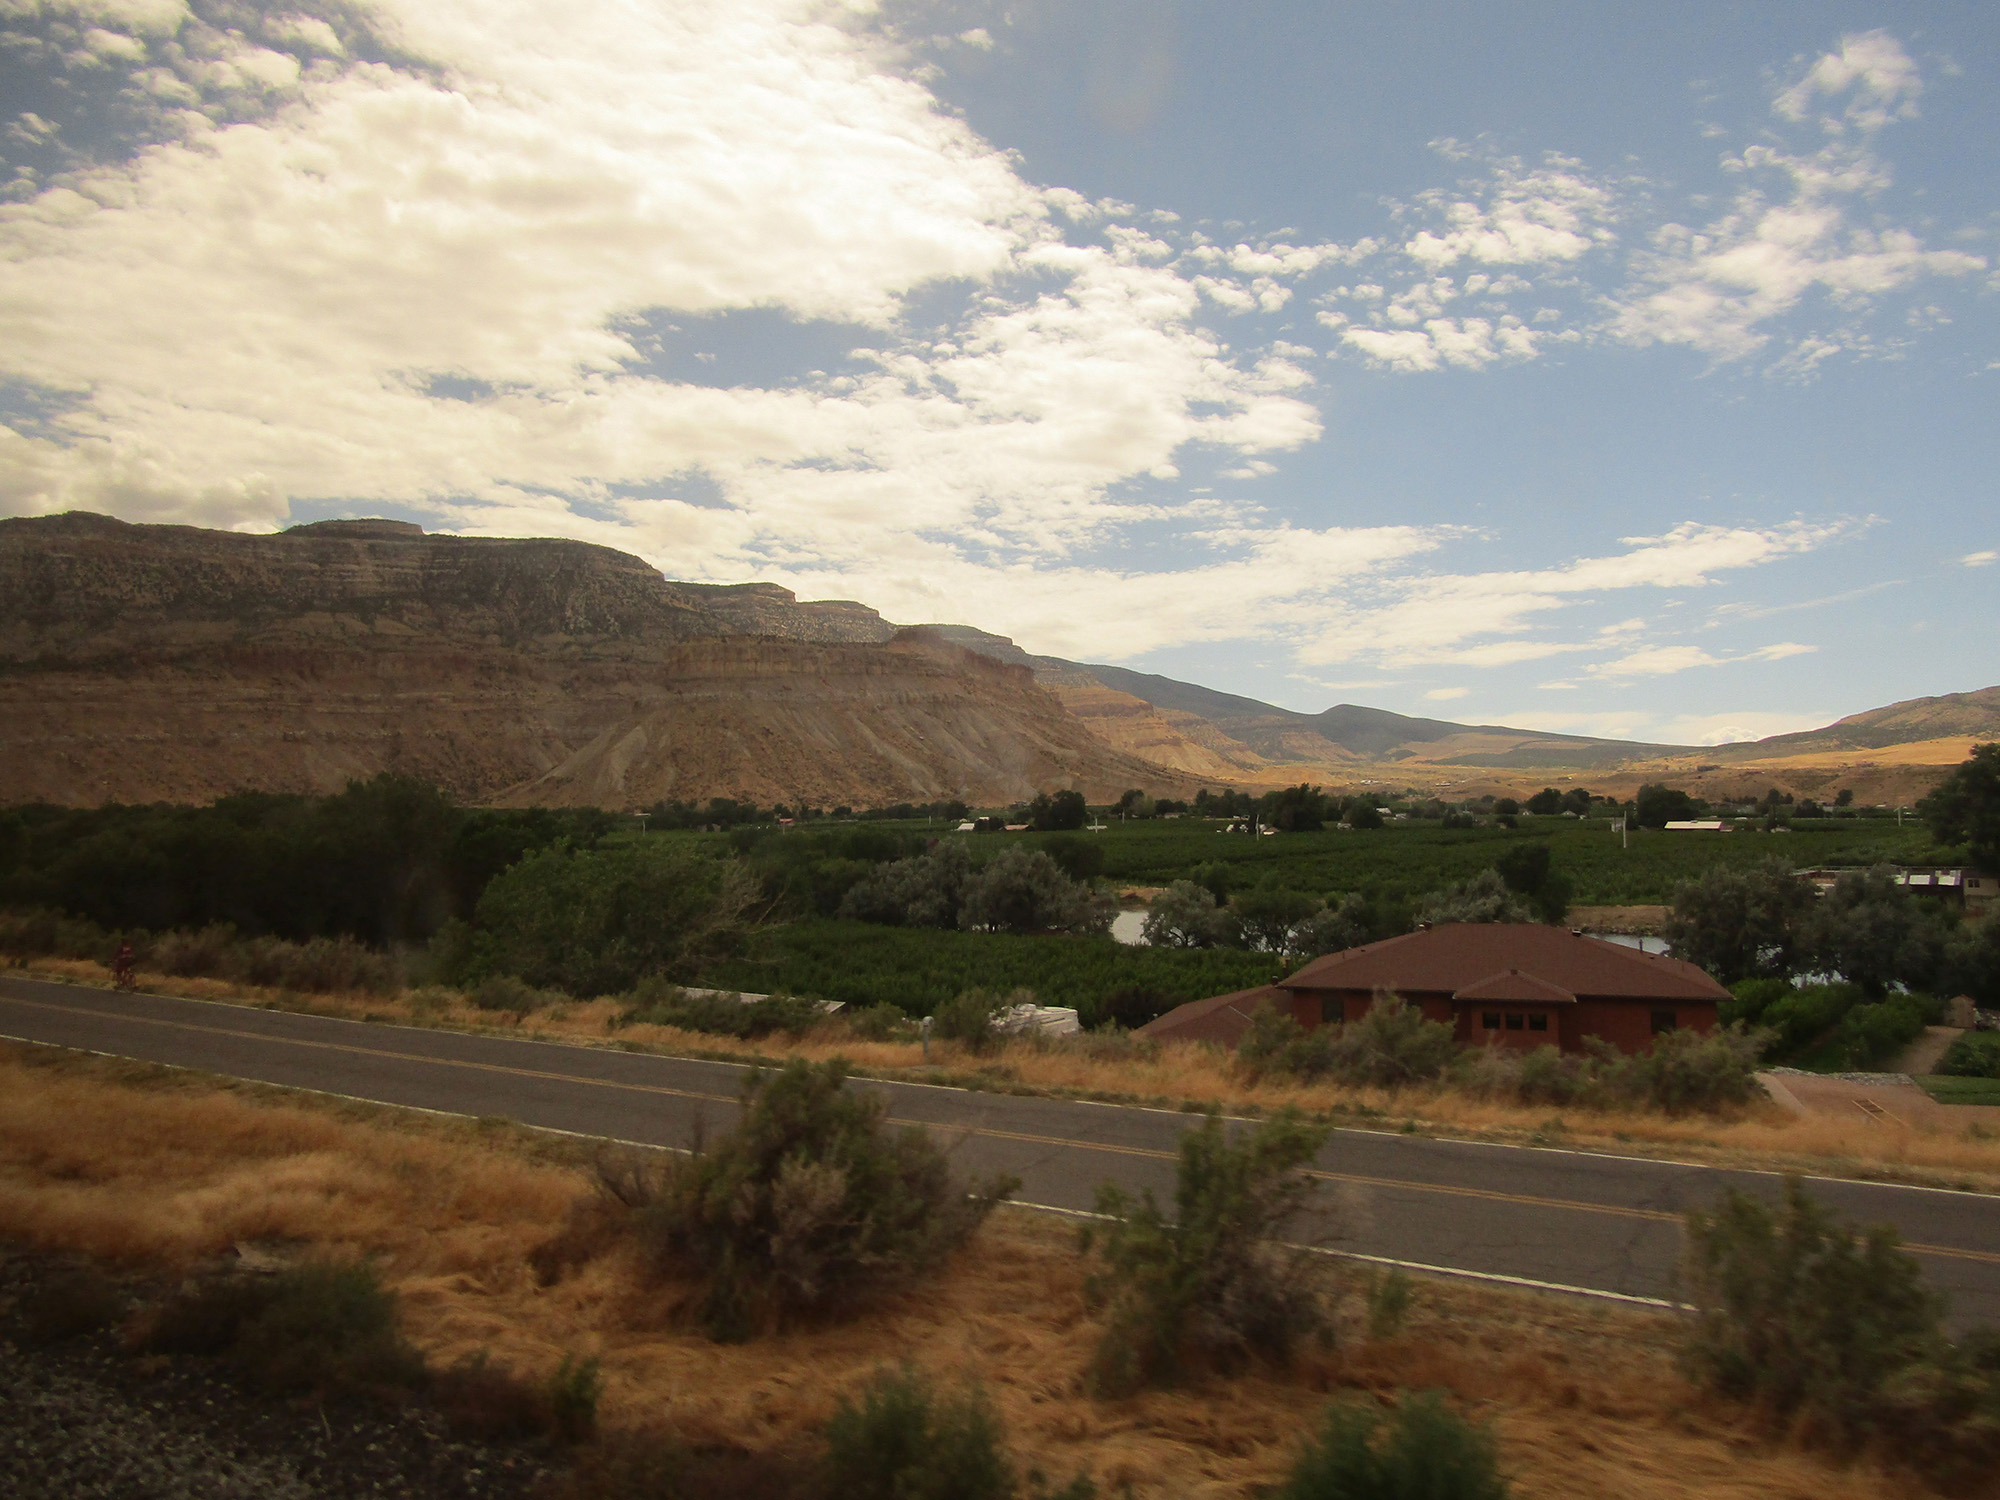 Amtrak Mooning Pictures travel trending with kathy witt: amtrak adventure to the